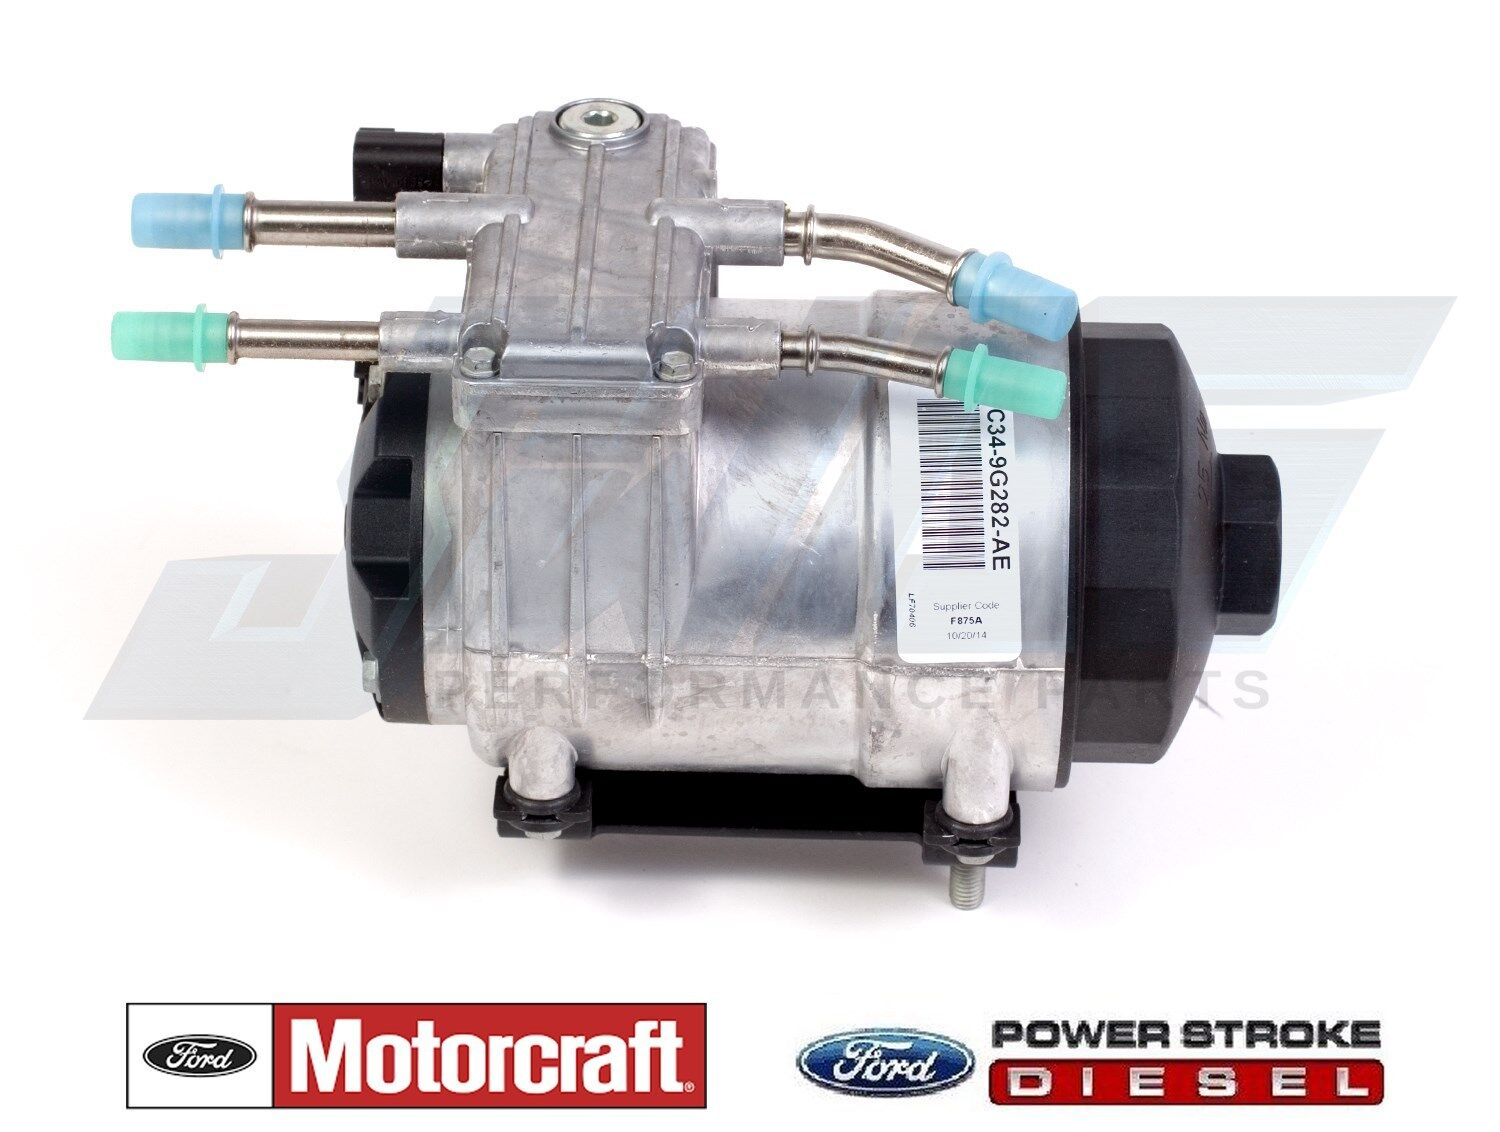 hight resolution of details about 03 07 6 0 powerstroke diesel oem genuine ford motorcraft hfcm fuel pump assembly